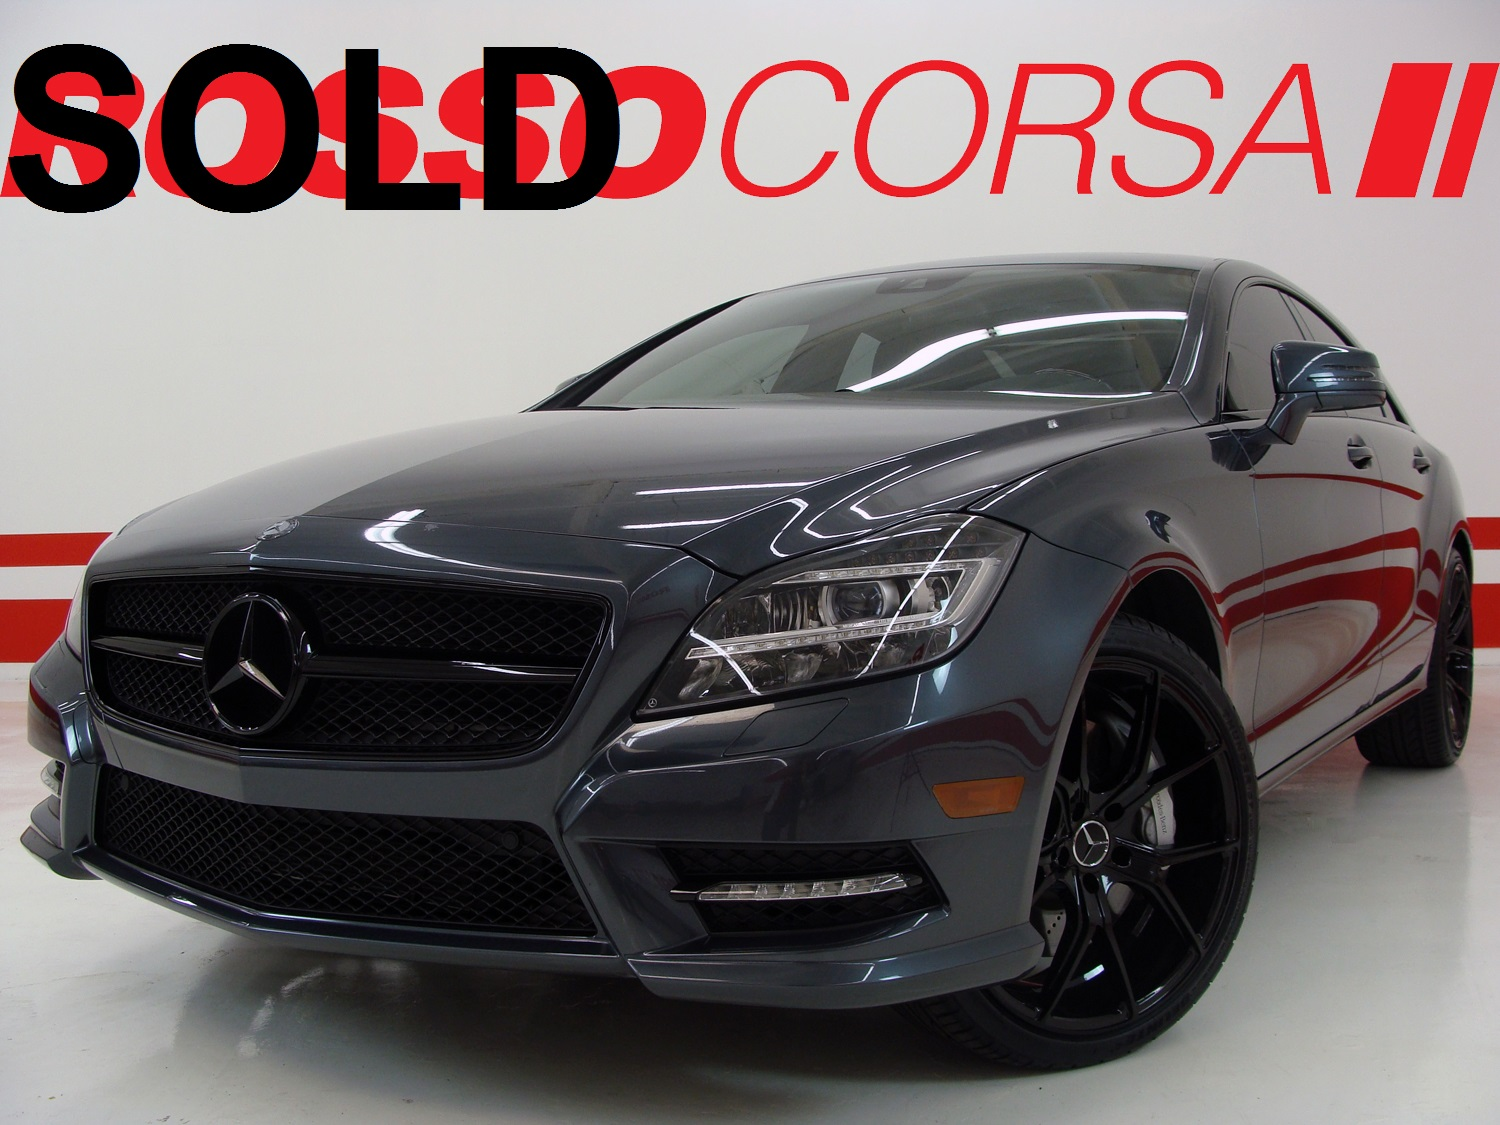 2013 Mercedes-Benz CLS550 CUSTOM ($83K MSRP)